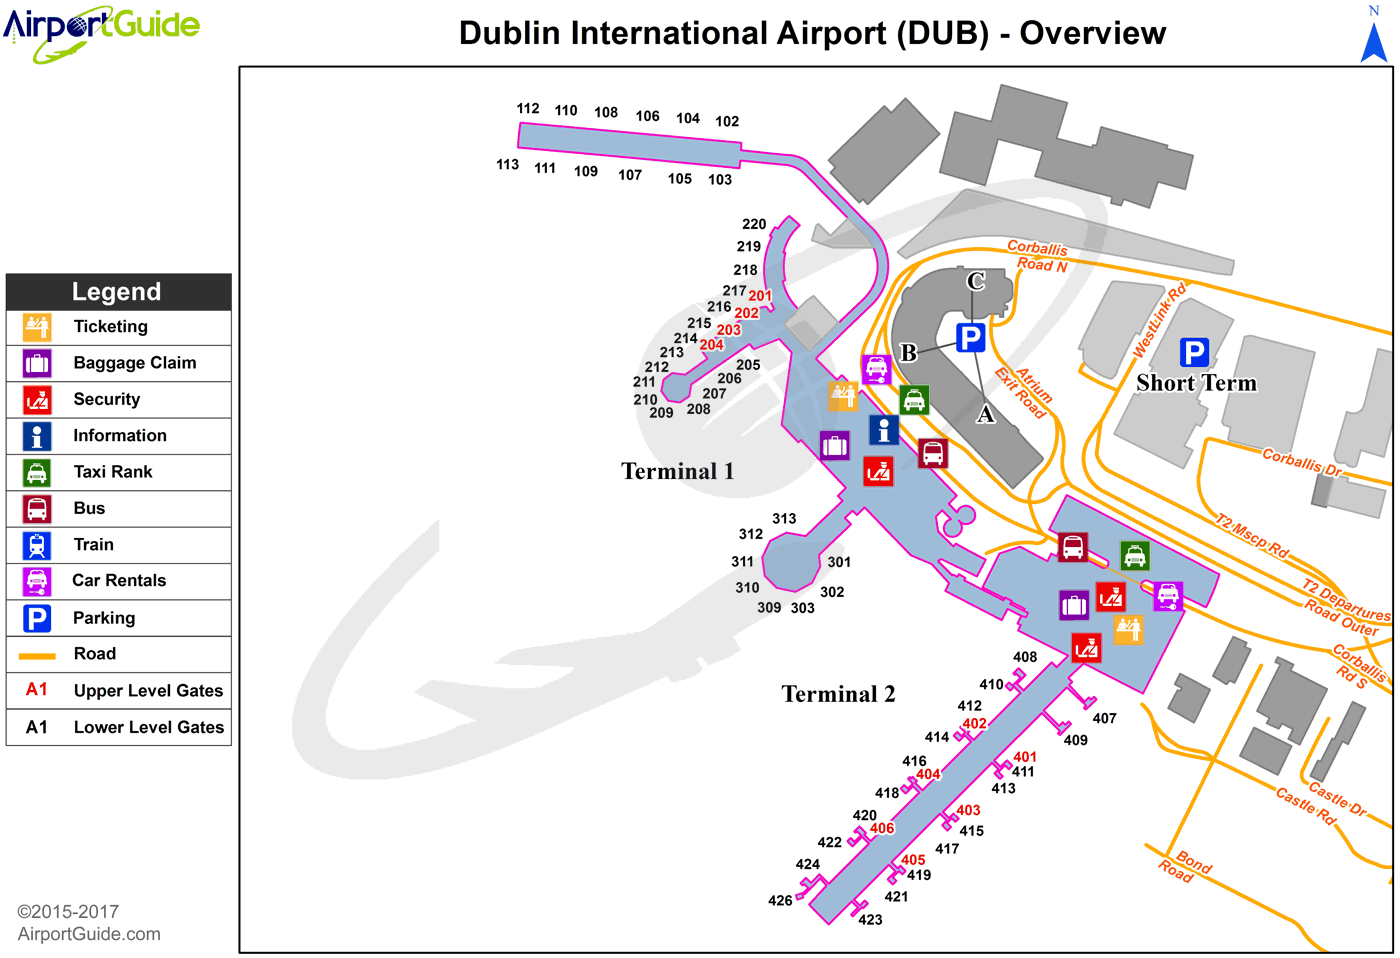 Dublin Airport Map Dublin   Dublin (DUB) Airport Terminal Map   Overview | Airport